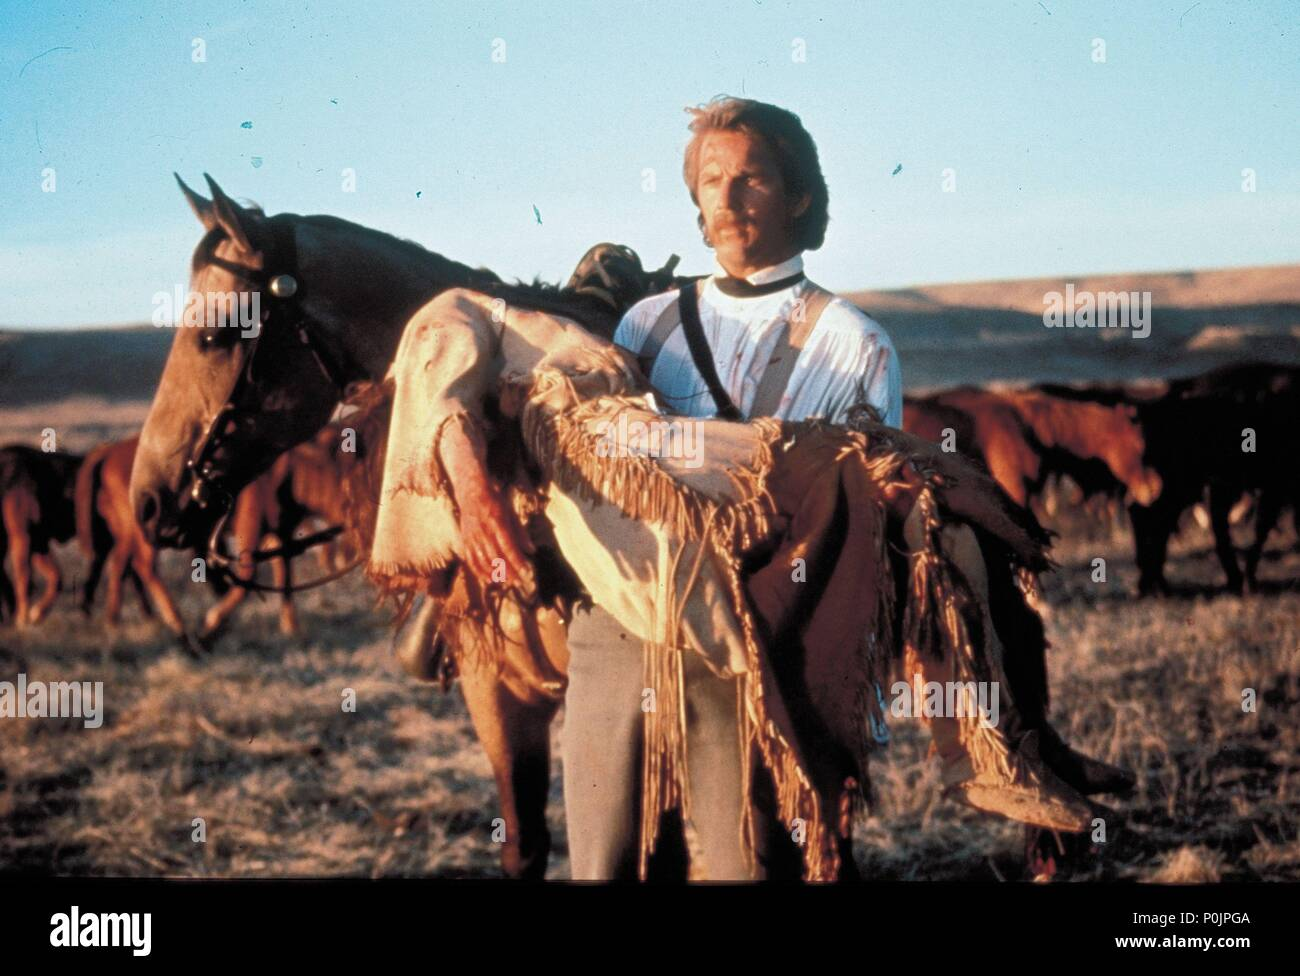 a movie review of dances with wolves starring kevin costner Dances with wolves movie starring kevin costner help on questions, 10 pts 1 how does violence--- whether toward nature, animal, or humans---epitomize, continue, and/or break with native american stereotypes.